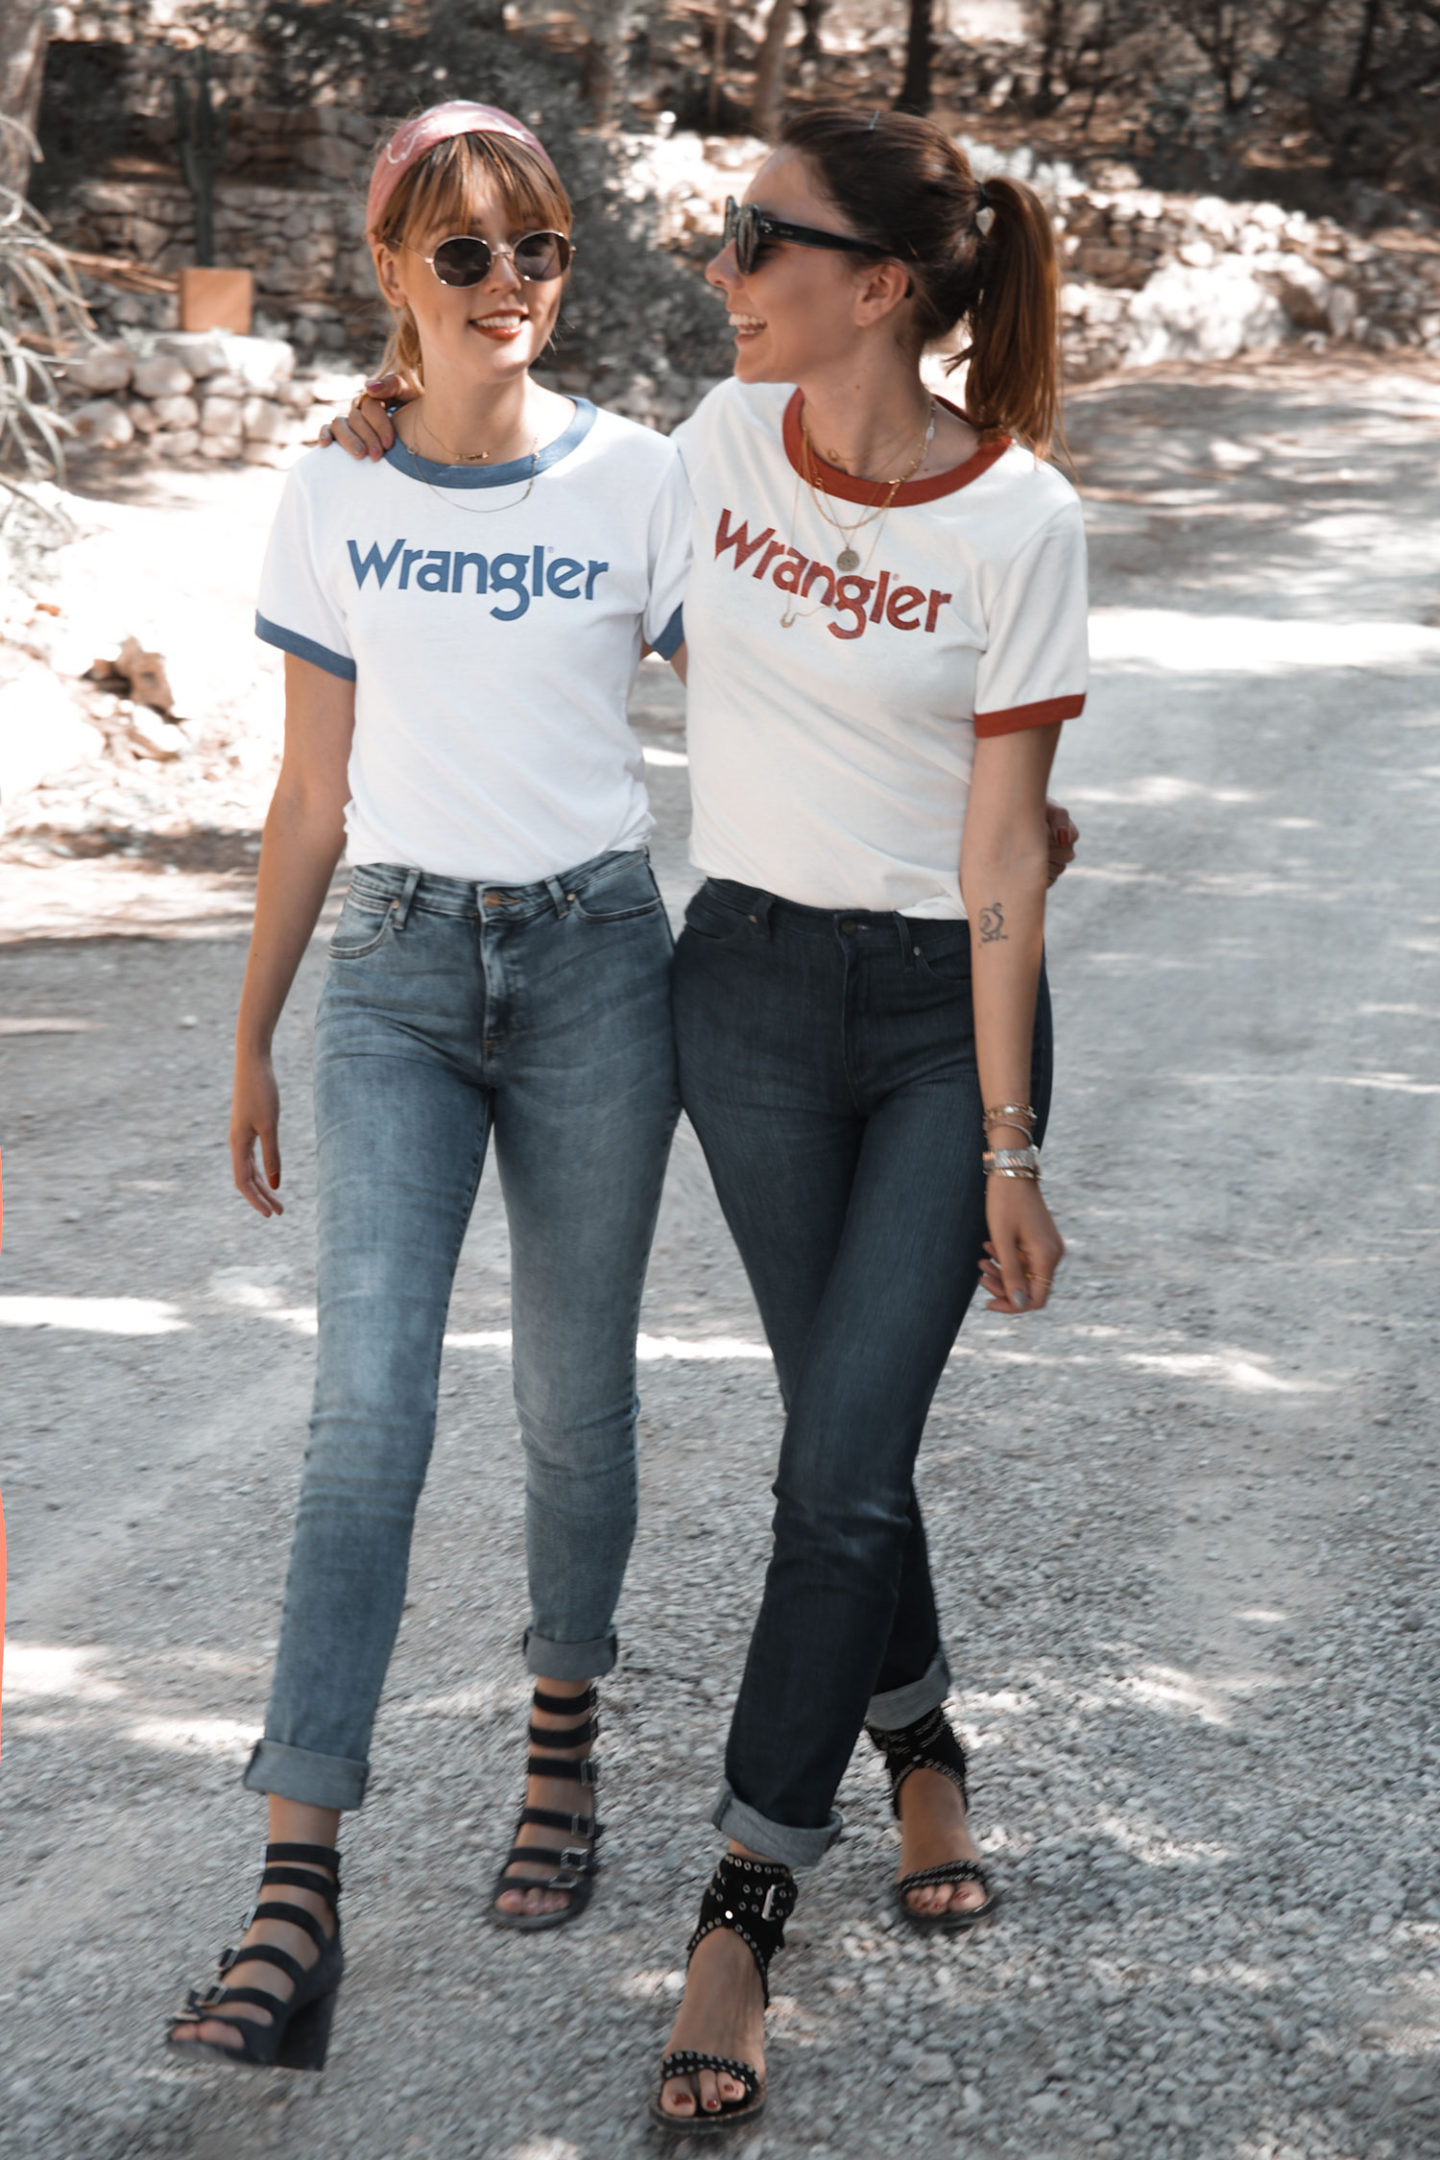 The perfect fit jeans with Wrangler